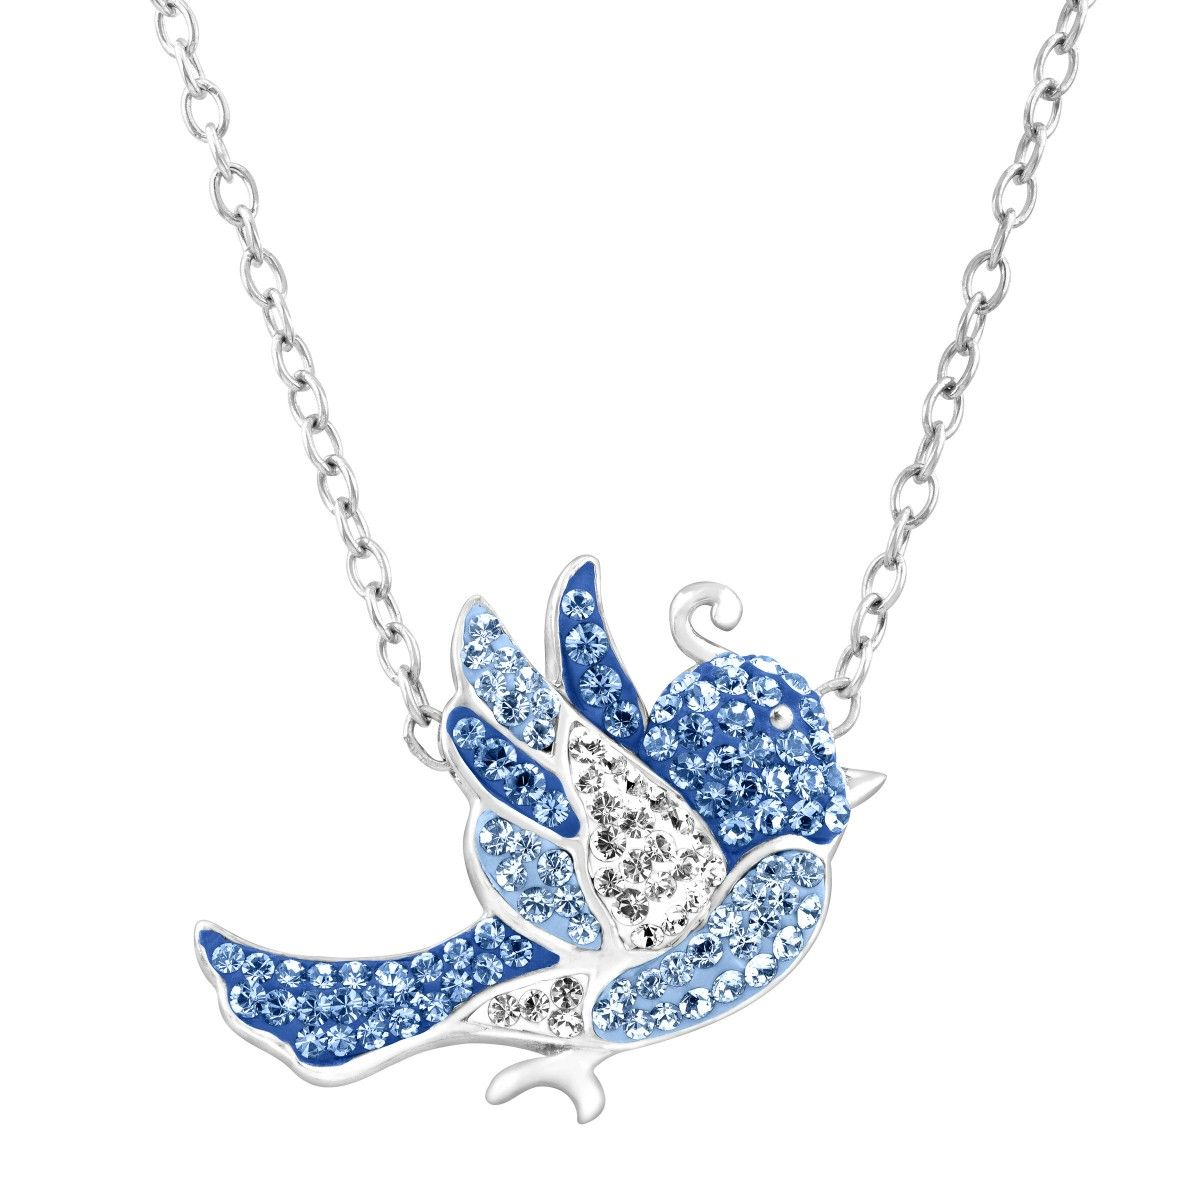 6308c8dd0 4/1/16 - CRYSTALUXE Bluebird Necklace with Swarovski Crystals in Sterling  Silver